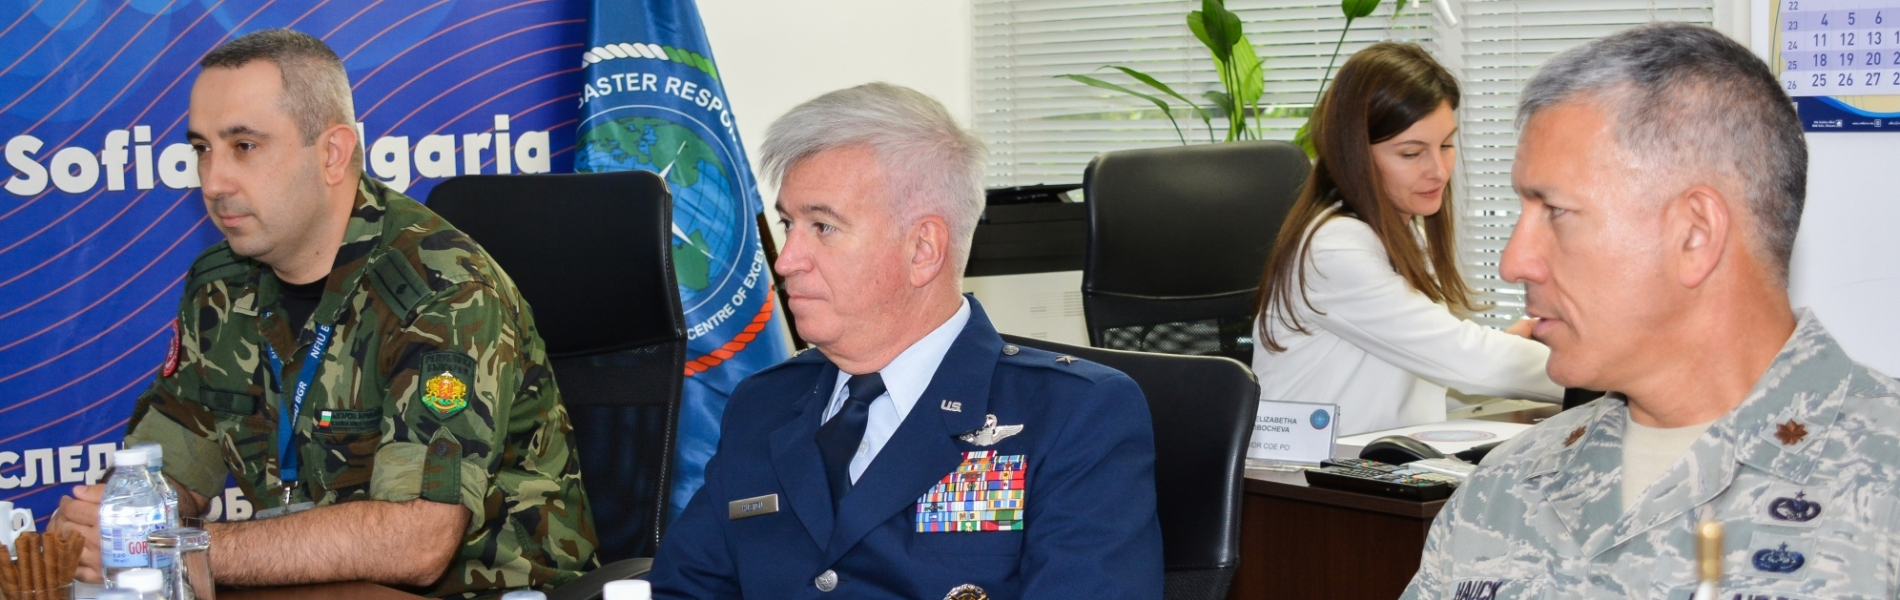 Brigadier General Robert A. Huston Pays Official Visit to CMDR COE